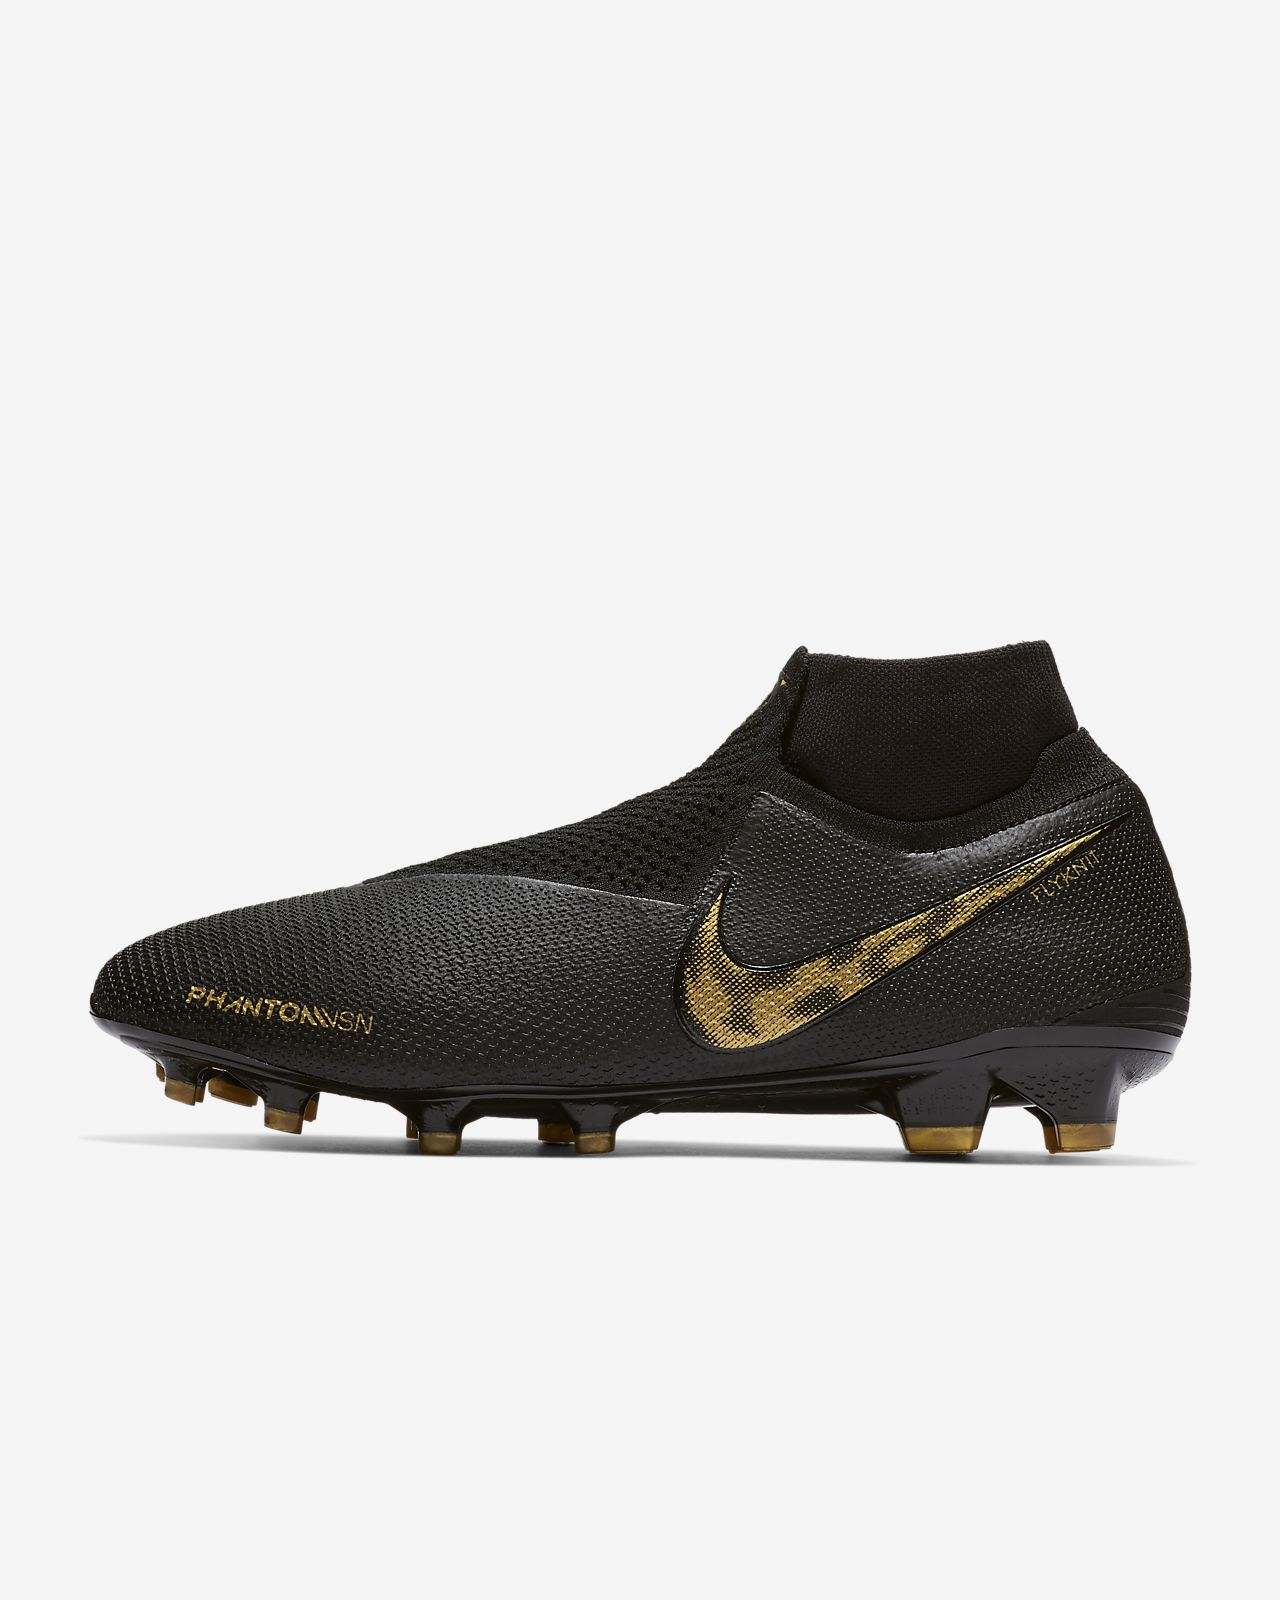 e84e11a75115 Nike Phantom Vision Elite Dynamic Fit FG Firm-Ground Soccer Cleat ...